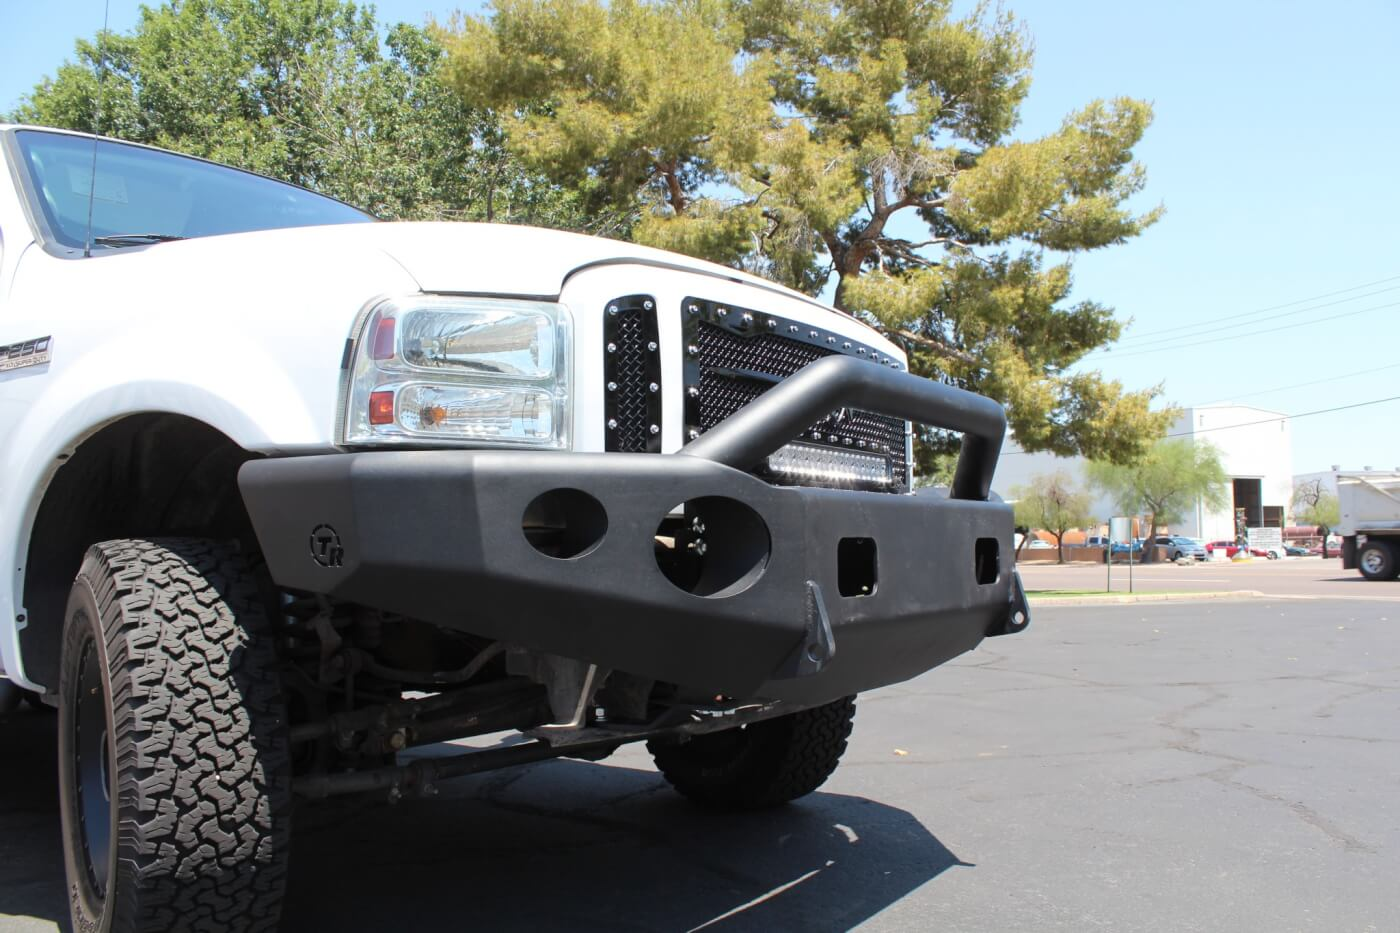 19A/19B. As you can see from these before and after shots, the finished product completely transforms the look of the truck. The Royalty Core grille and TrailReady bumper make a great pair and give the nose of the truck a strong, aggressive look. And the modifications are functional—the heavy-duty bumper won't succumb to parking lot dings, and the grille turns night into day. Not bad for about four hours of work!